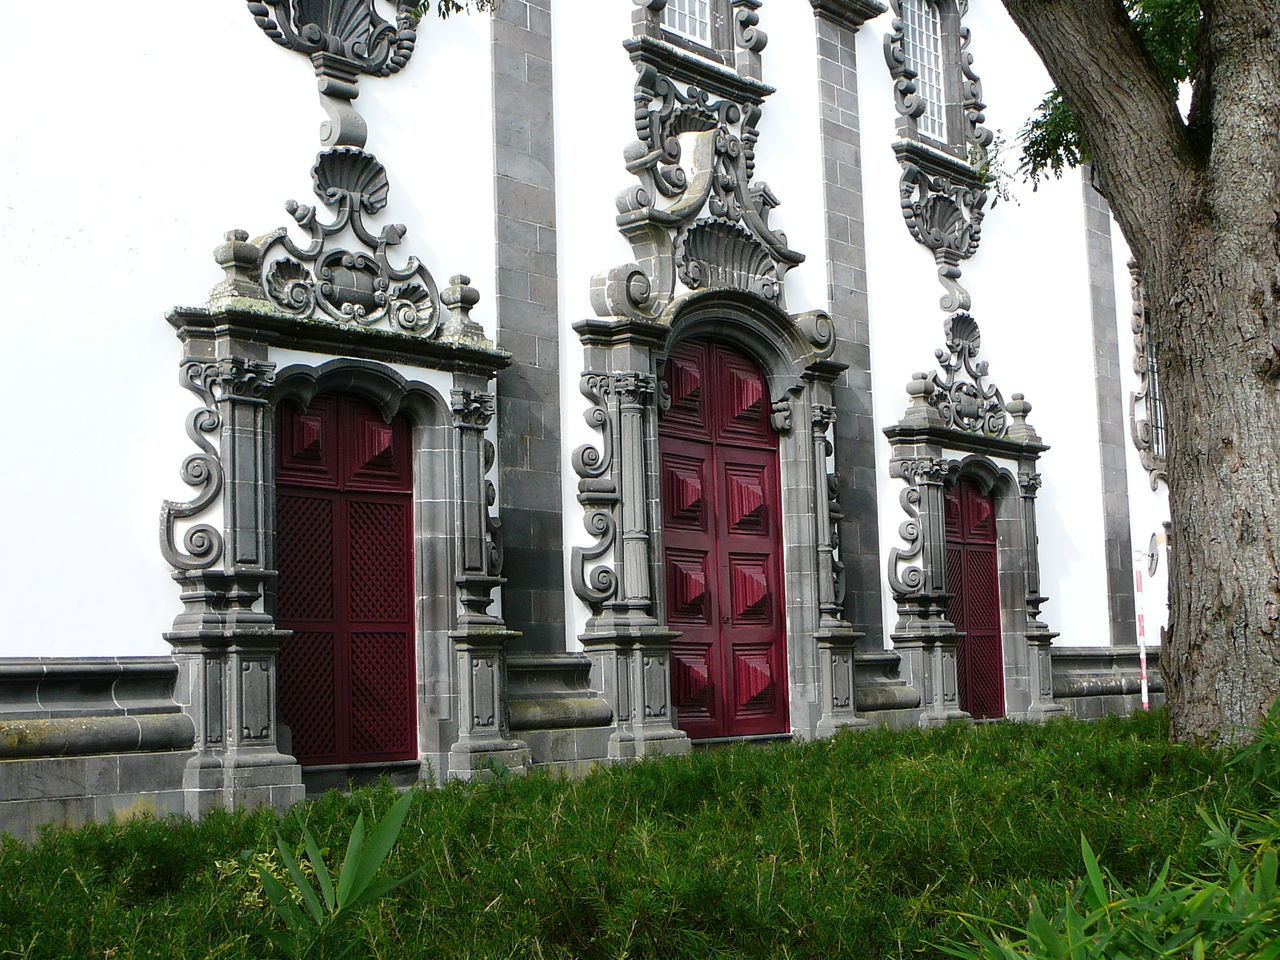 3 Doors ~ 3 Doors! How Many Secrets? Architecture Azores Building Exterior Built Structure Day Door Frame Doors Entrance Grass Impenetrable Maroon No People Ornate Ornate Stonework Outdoors Red Sao Miguel-Azores Stonework